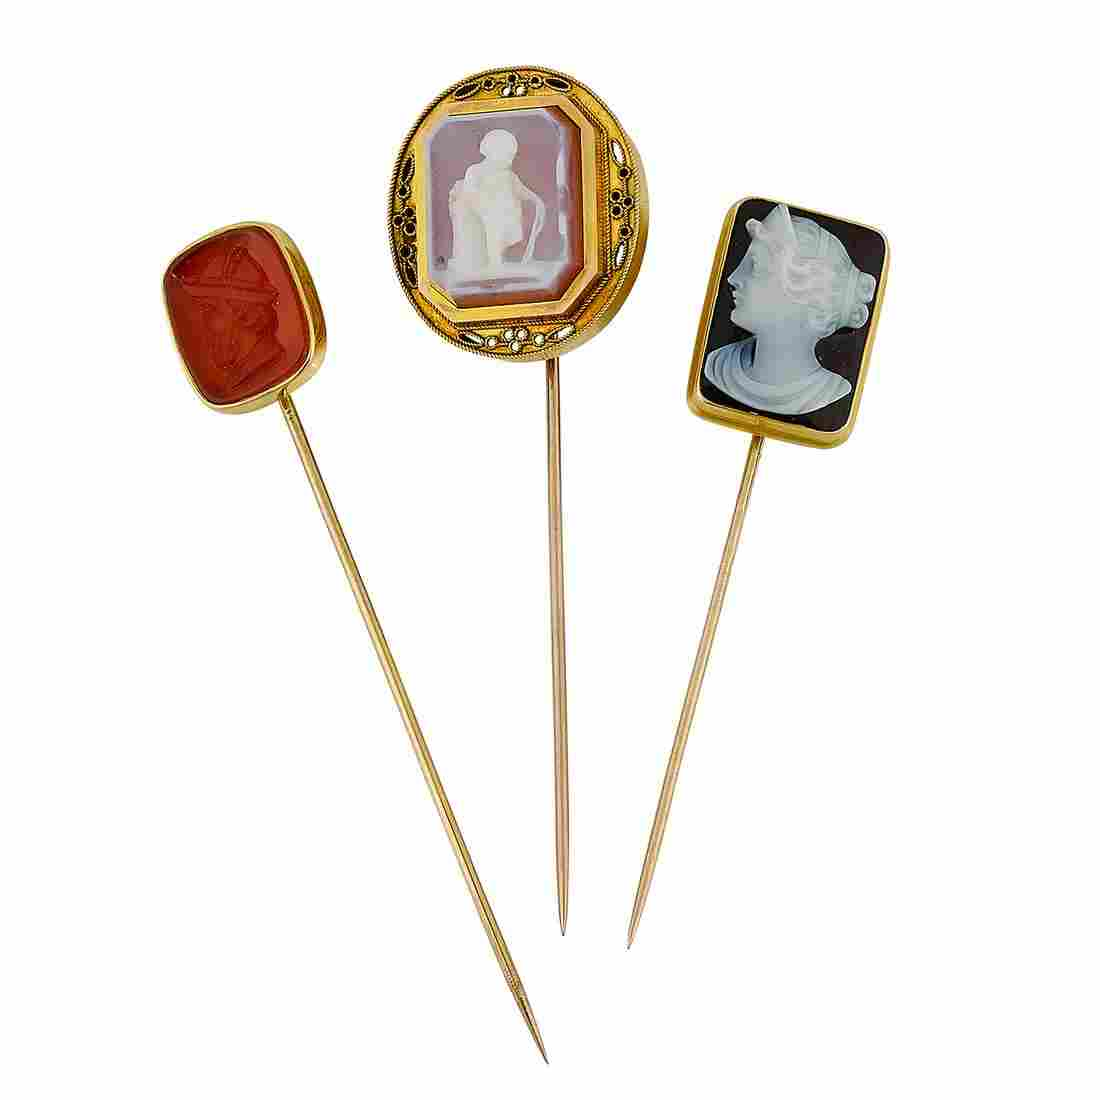 Antique / Victorian group of stick pins, three